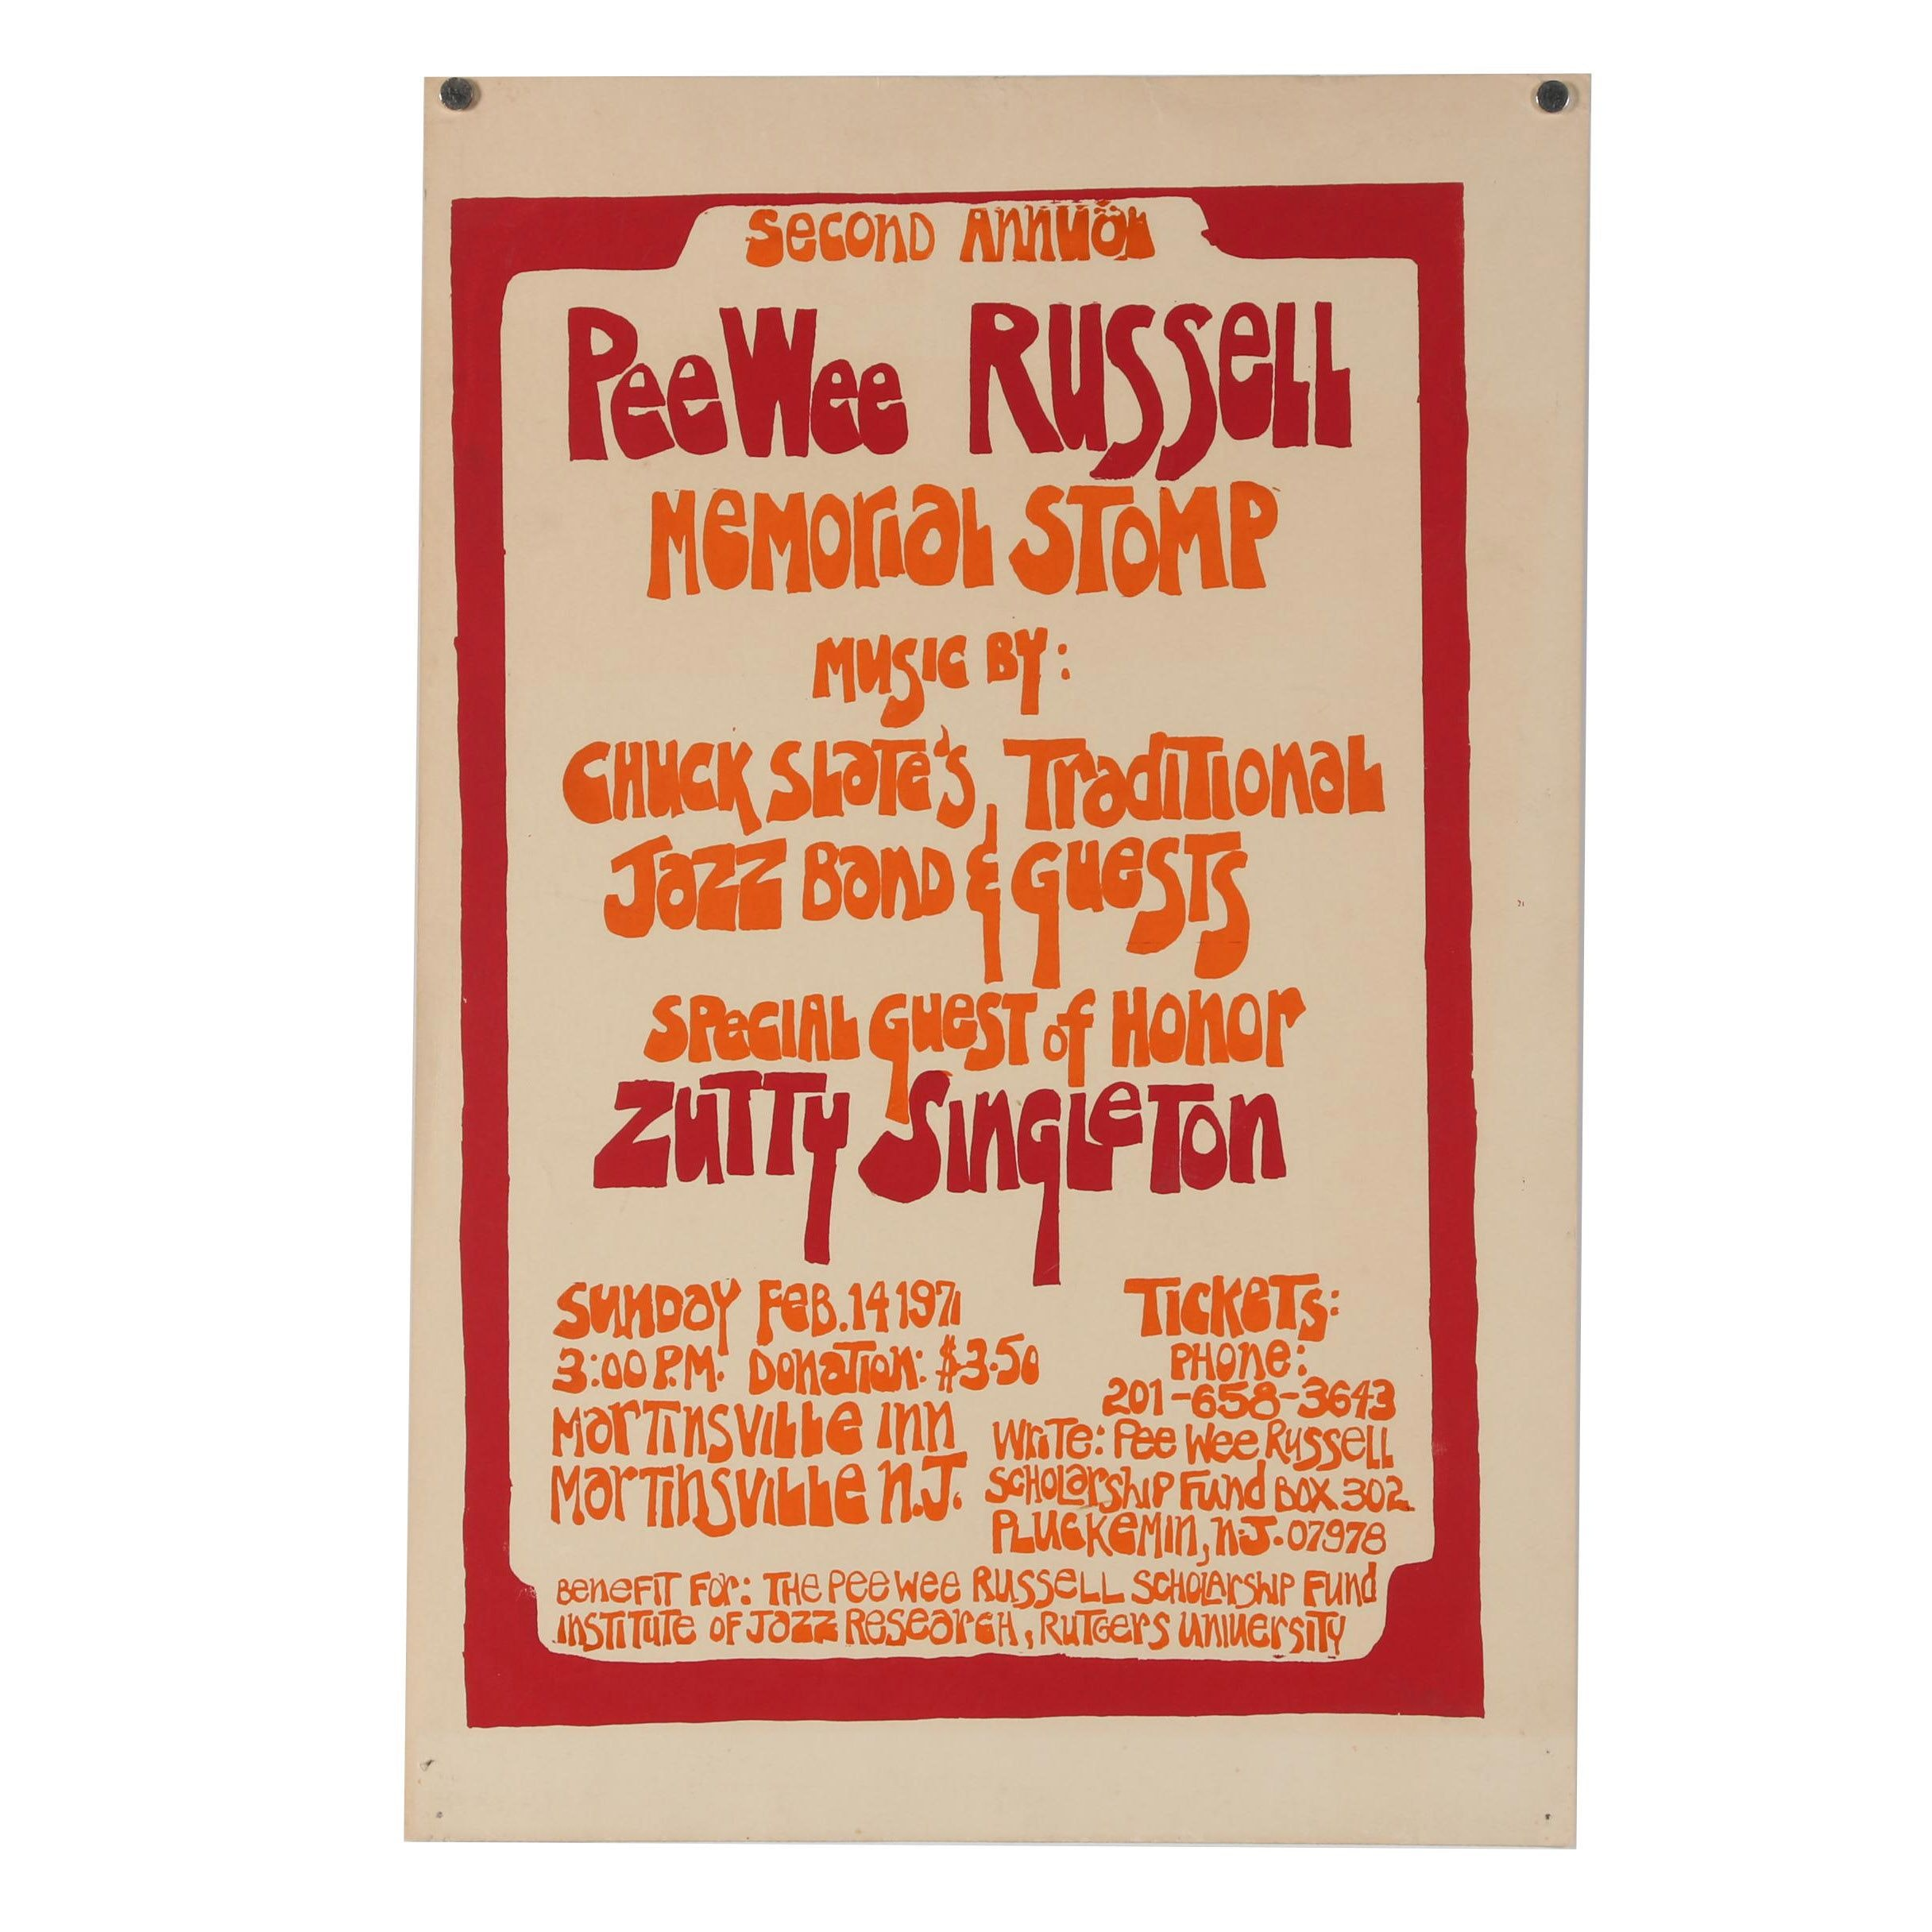 1971 Second Annual PeeWee Russell Memorial Stomp Promotional Poster